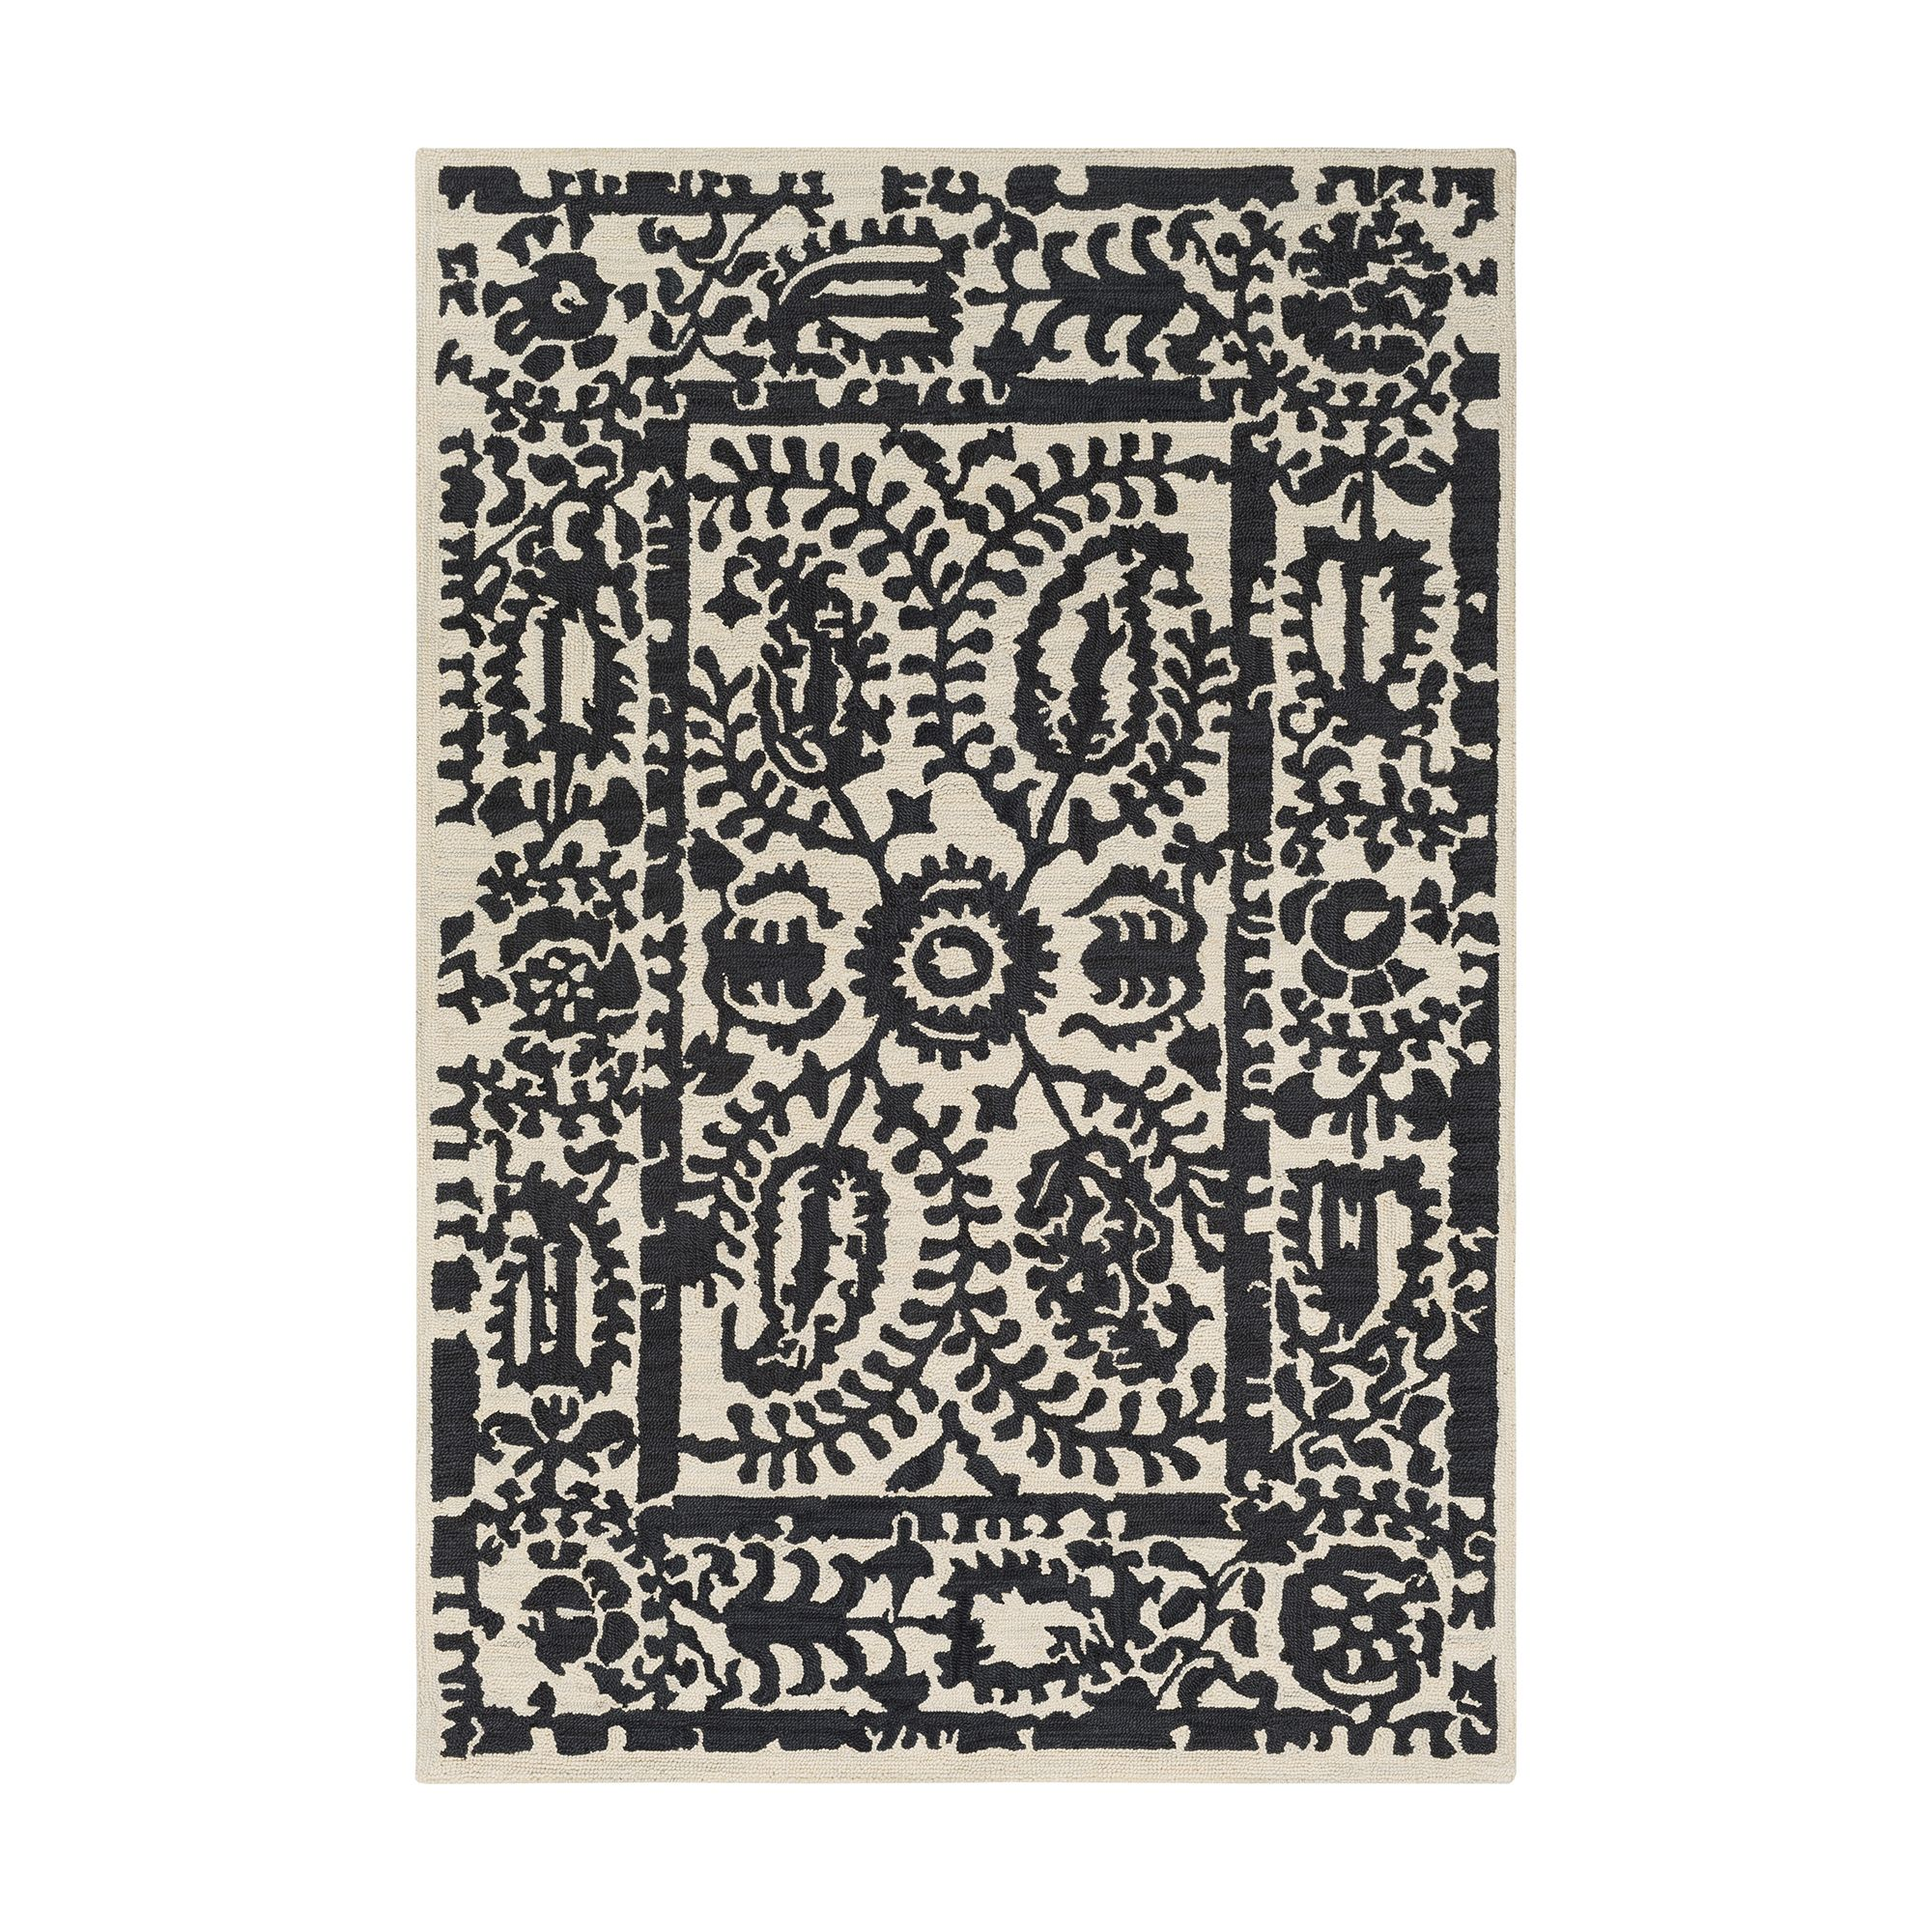 rug birminghamblackwovencottonrug birmingham p albert woven product white list zoom rugs black cotton and dash